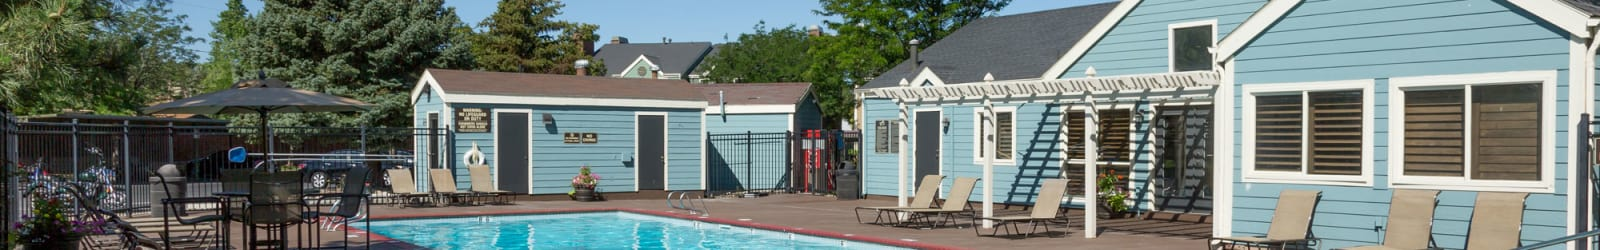 Accessibility statement at Royal Ridge Apartments in Midvale, Utah